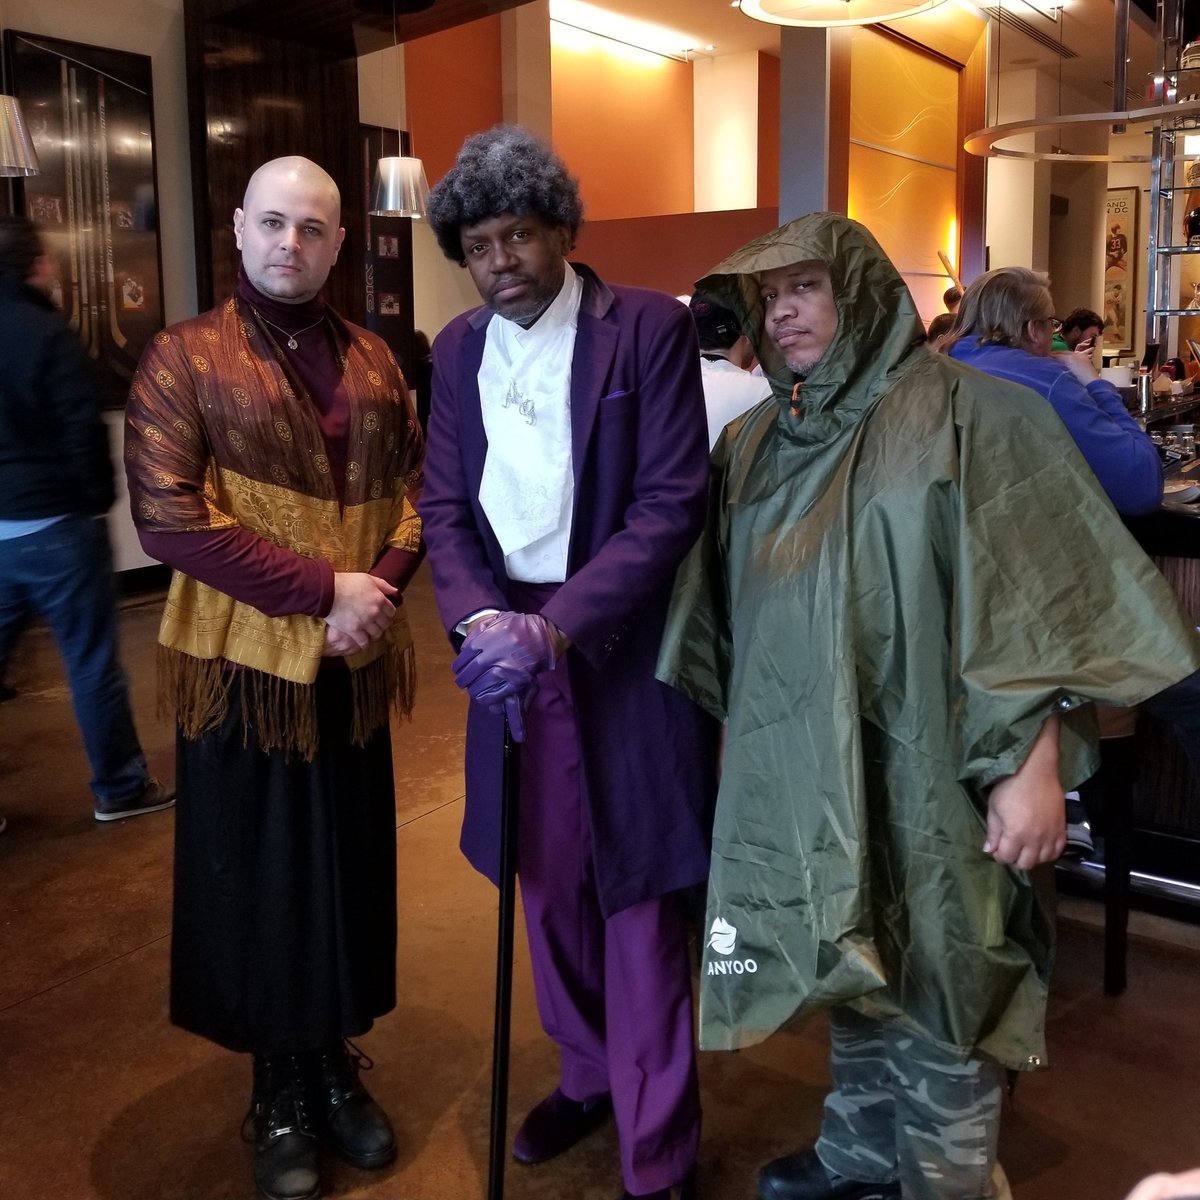 The Horde(Patricia), Mr Glass (Elijah Price), and the Hero (David Dunn) #katsucon2019 #glassmovie #MrGlass #Unbreakable #Split<br>http://pic.twitter.com/2JAVk1WFos